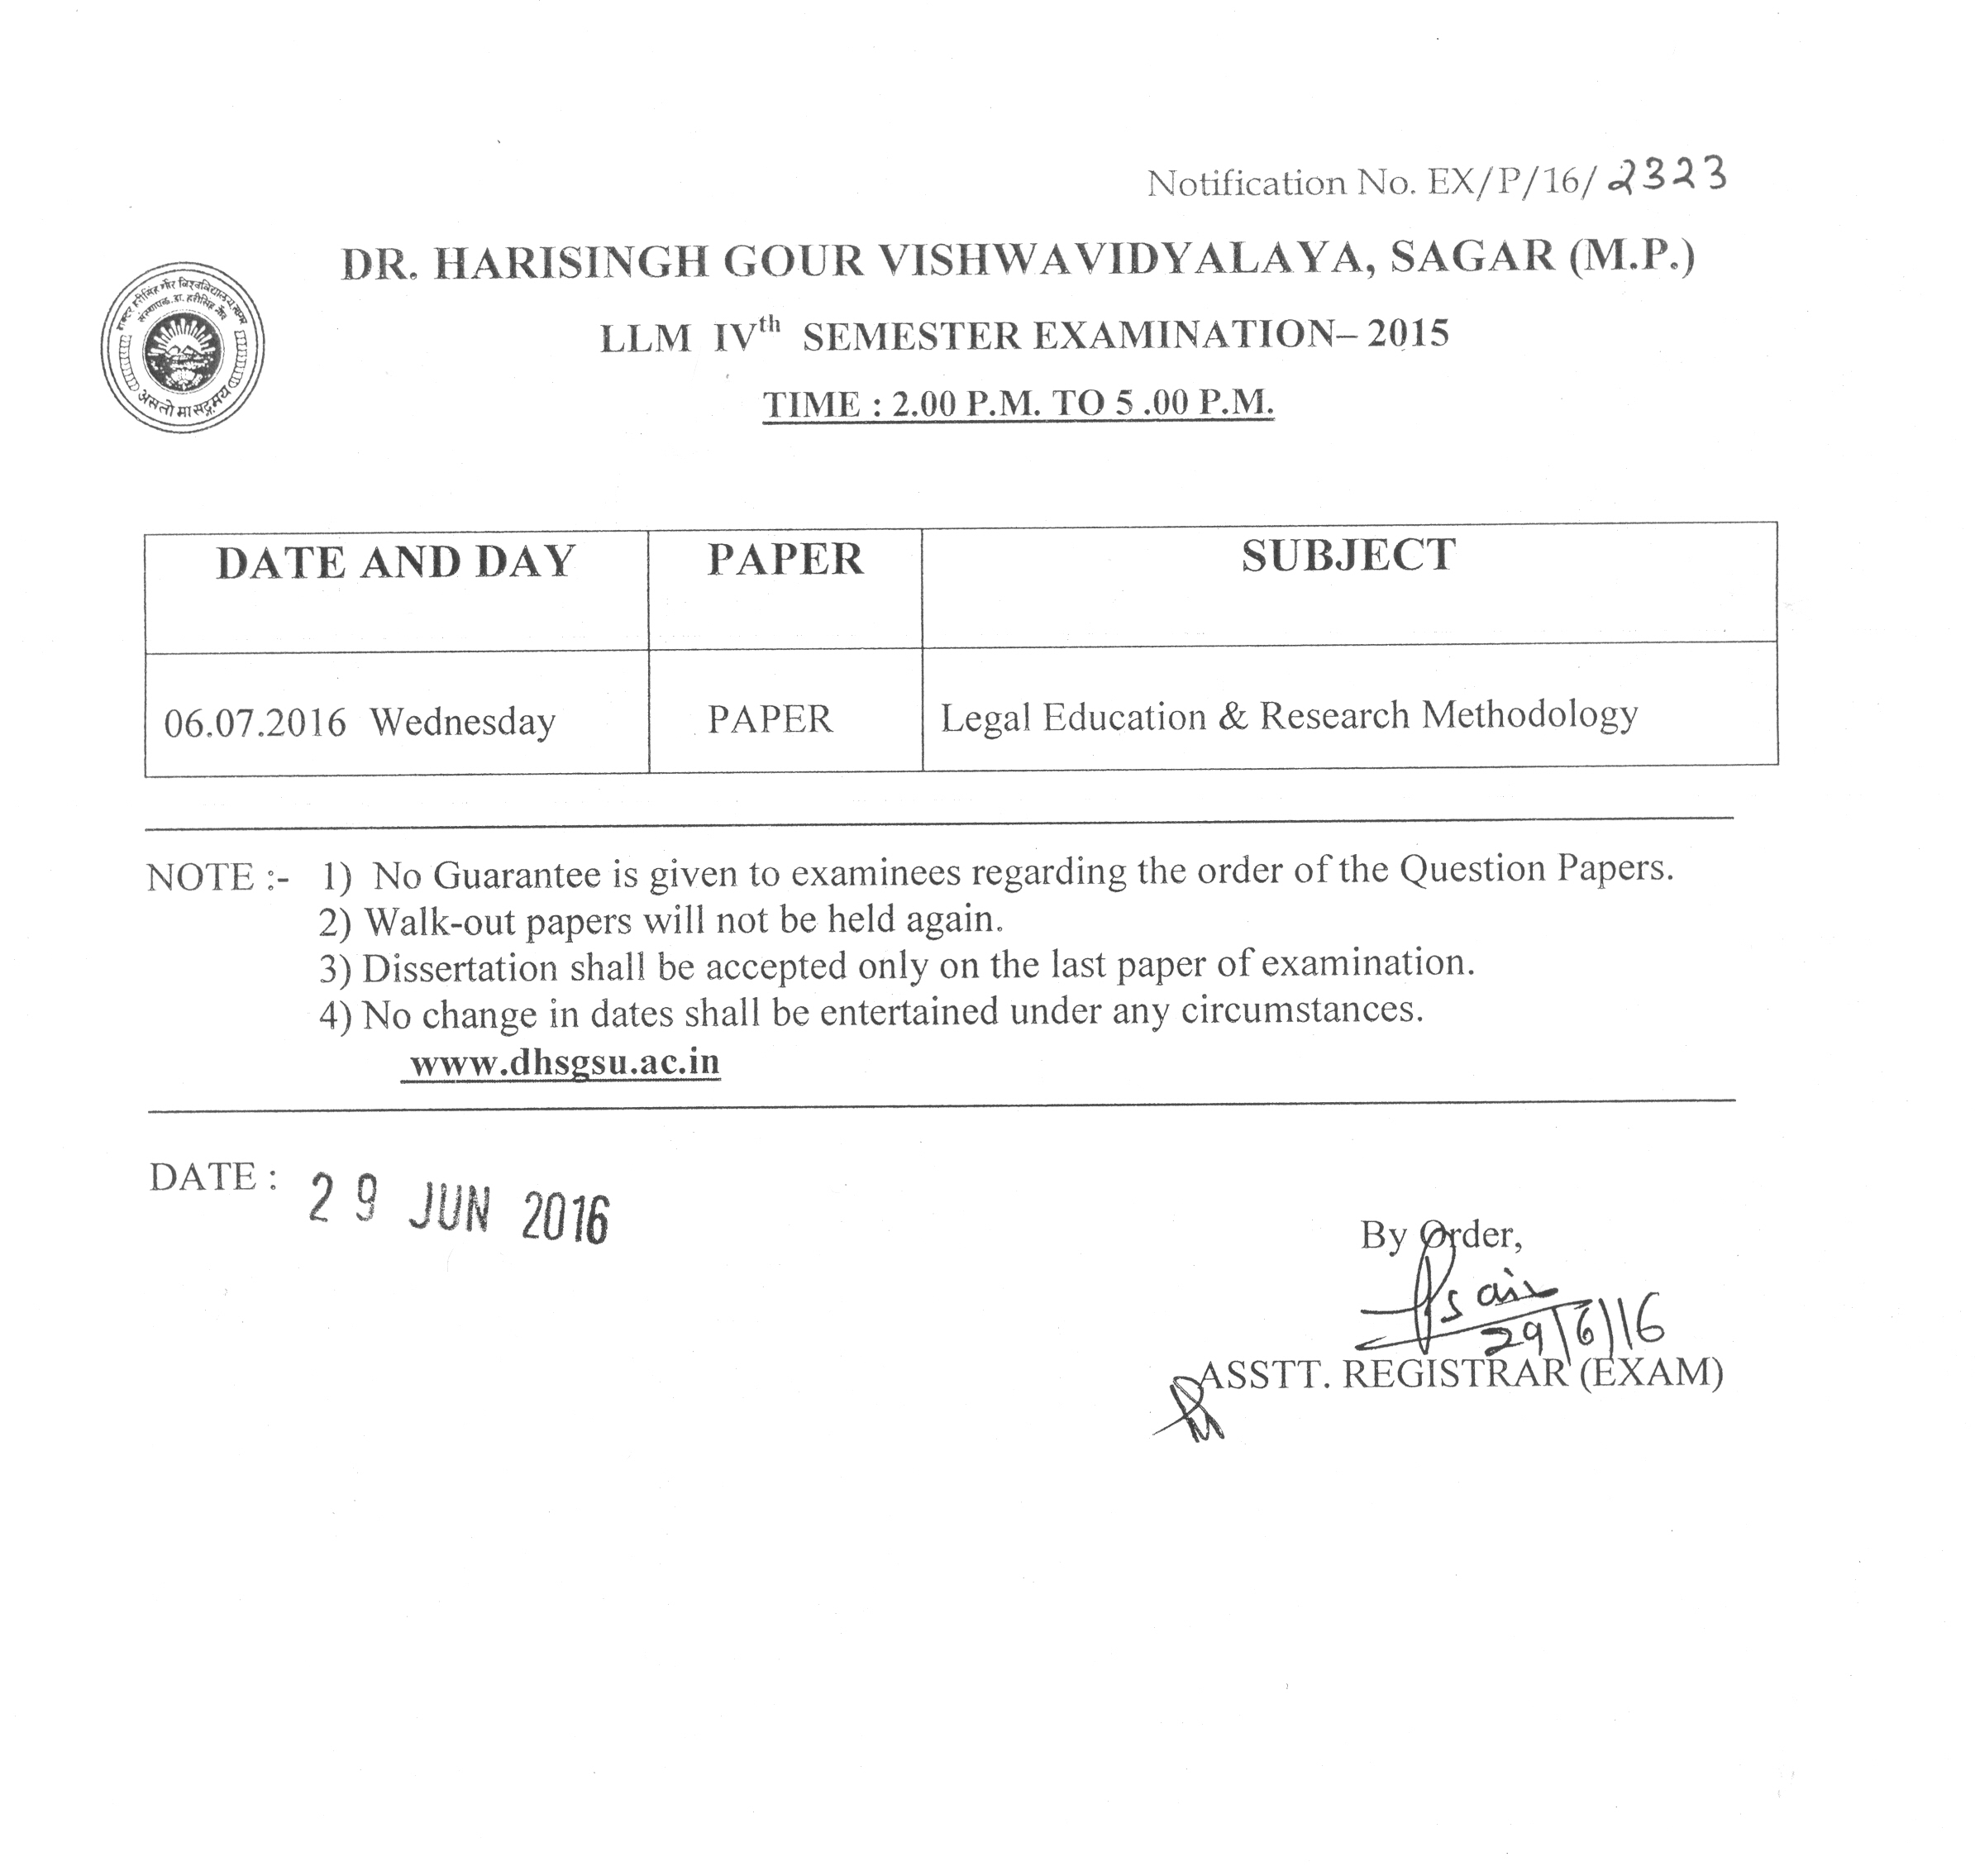 022 Animal Testing Research Paper Thesis Tt Exp16 No2323dt29062016 Beautiful Full